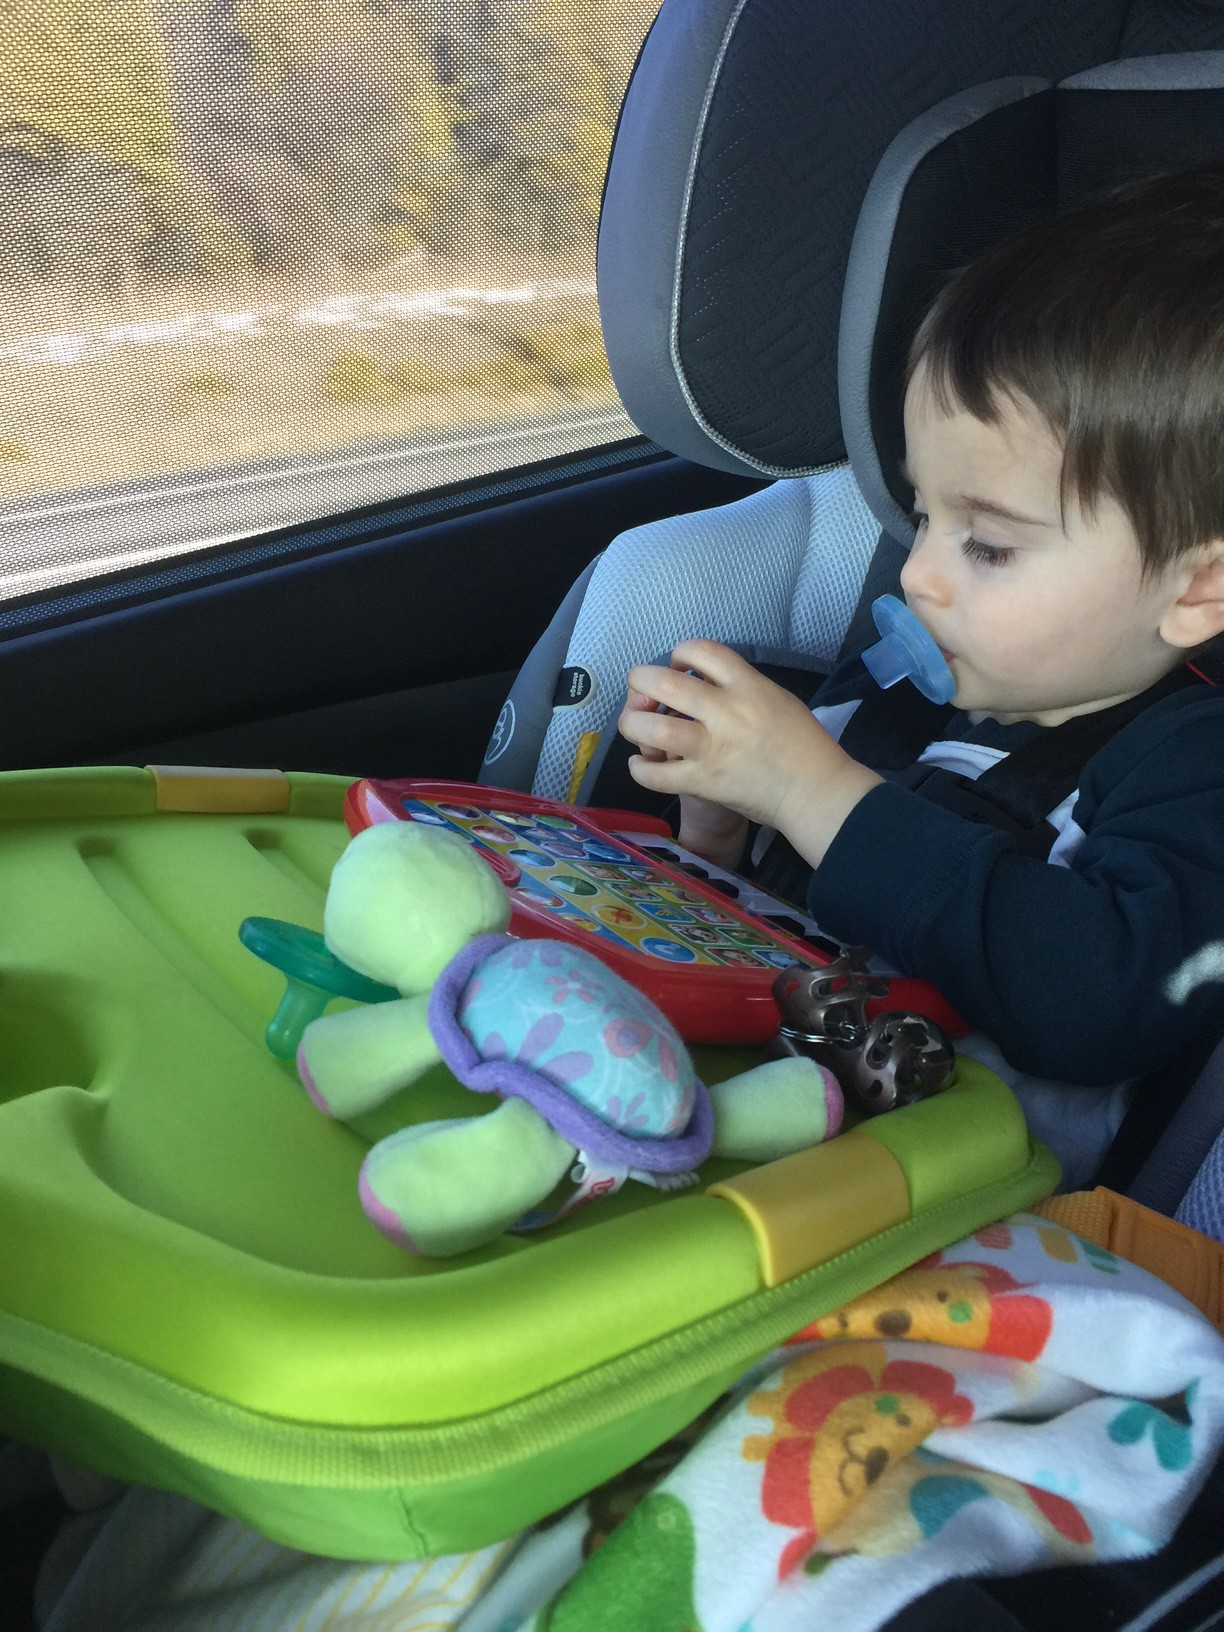 Essentially Its A Lightweight Lap Desk That Clips On To Your Childs Car Seat Transforming Their Area Into Usable Space